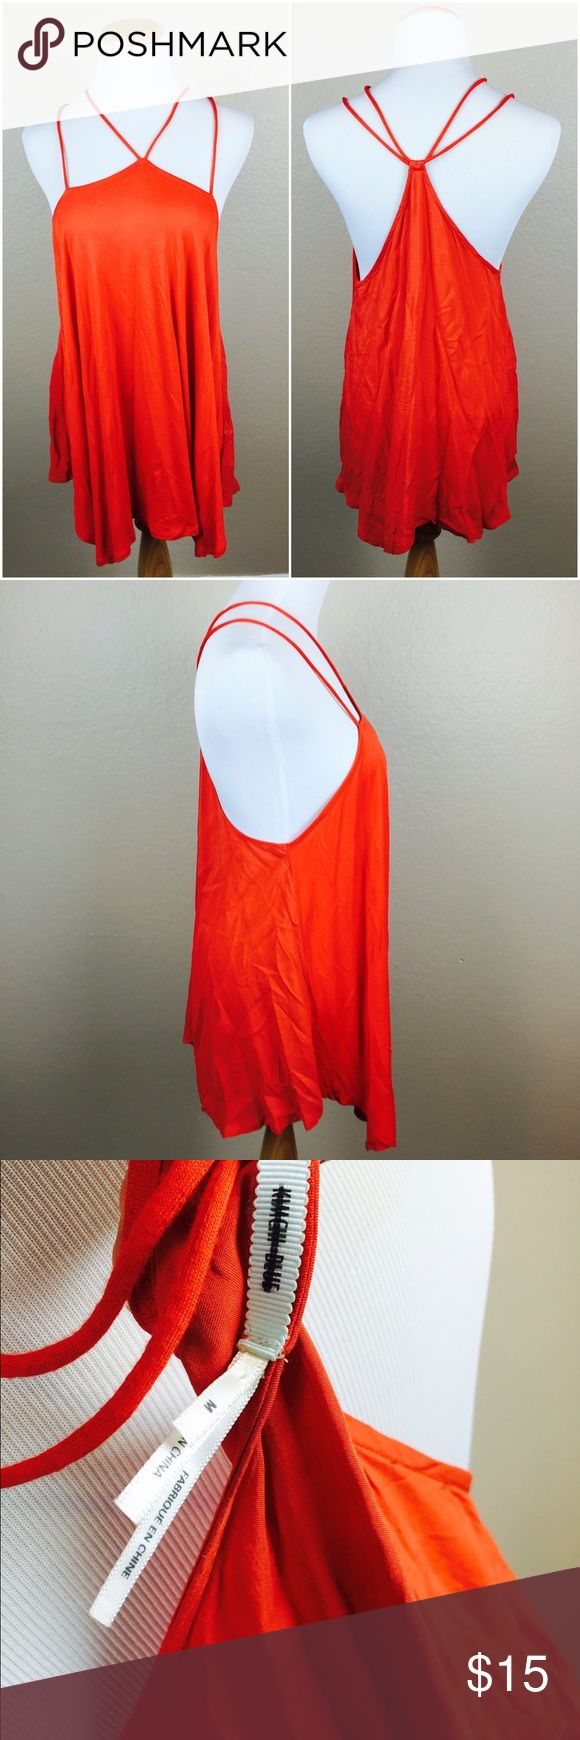 Kimchi Blue Strappy Orange Top Lightweight Orange/Red blend Strappy top by Kimchi Blue. Size M. In like new condition. Has blacked out tag. Asymmetrical hem. Breathable soft fabric. 100% Rayon. Urban Outfitters Tops Tank Tops